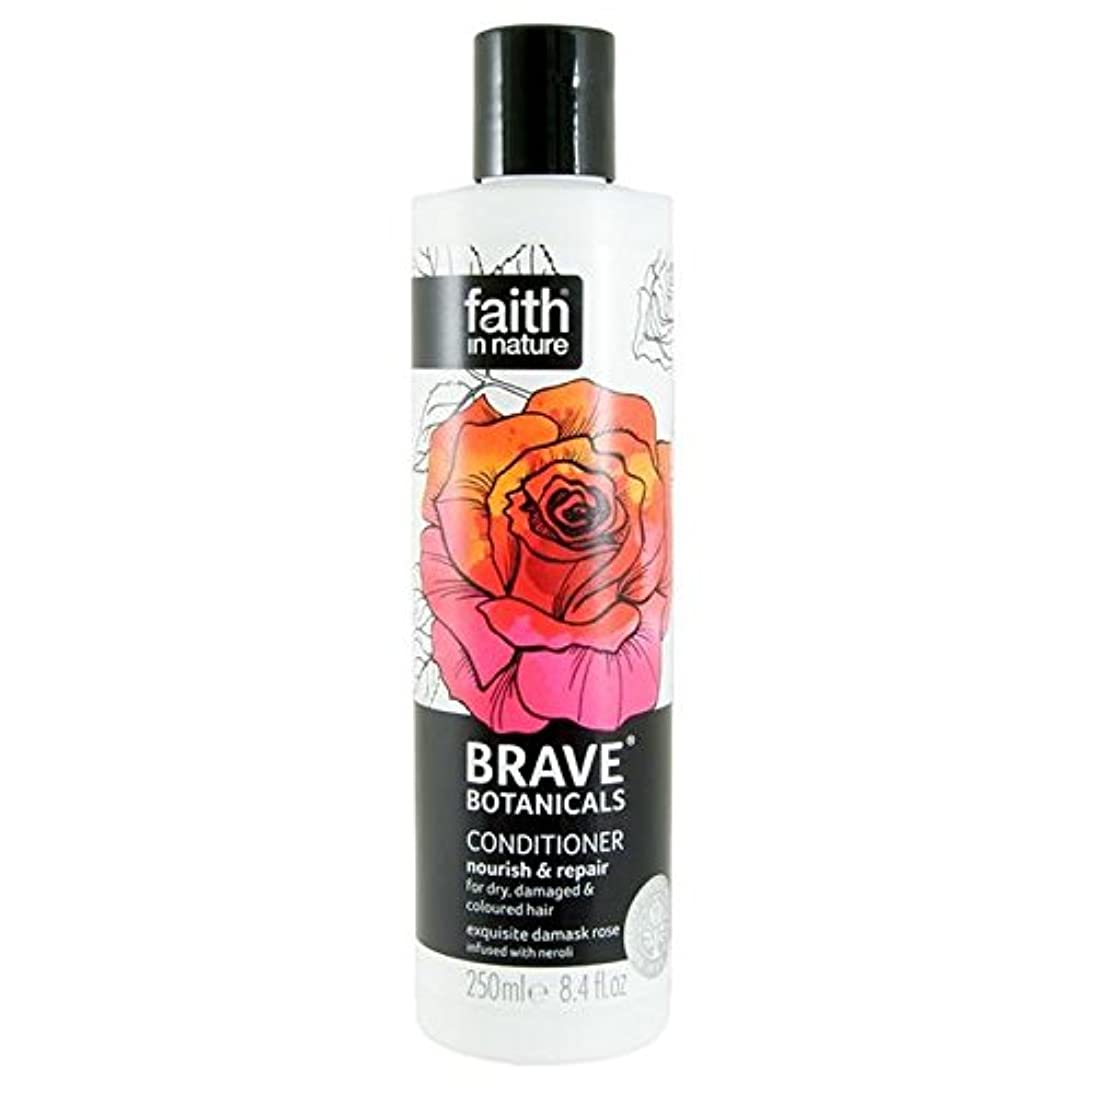 Brave Botanicals Rose & Neroli Nourish & Repair Conditioner 250ml (Pack of 4) - (Faith In Nature) 勇敢な植物は、ローズ&ネロリ...